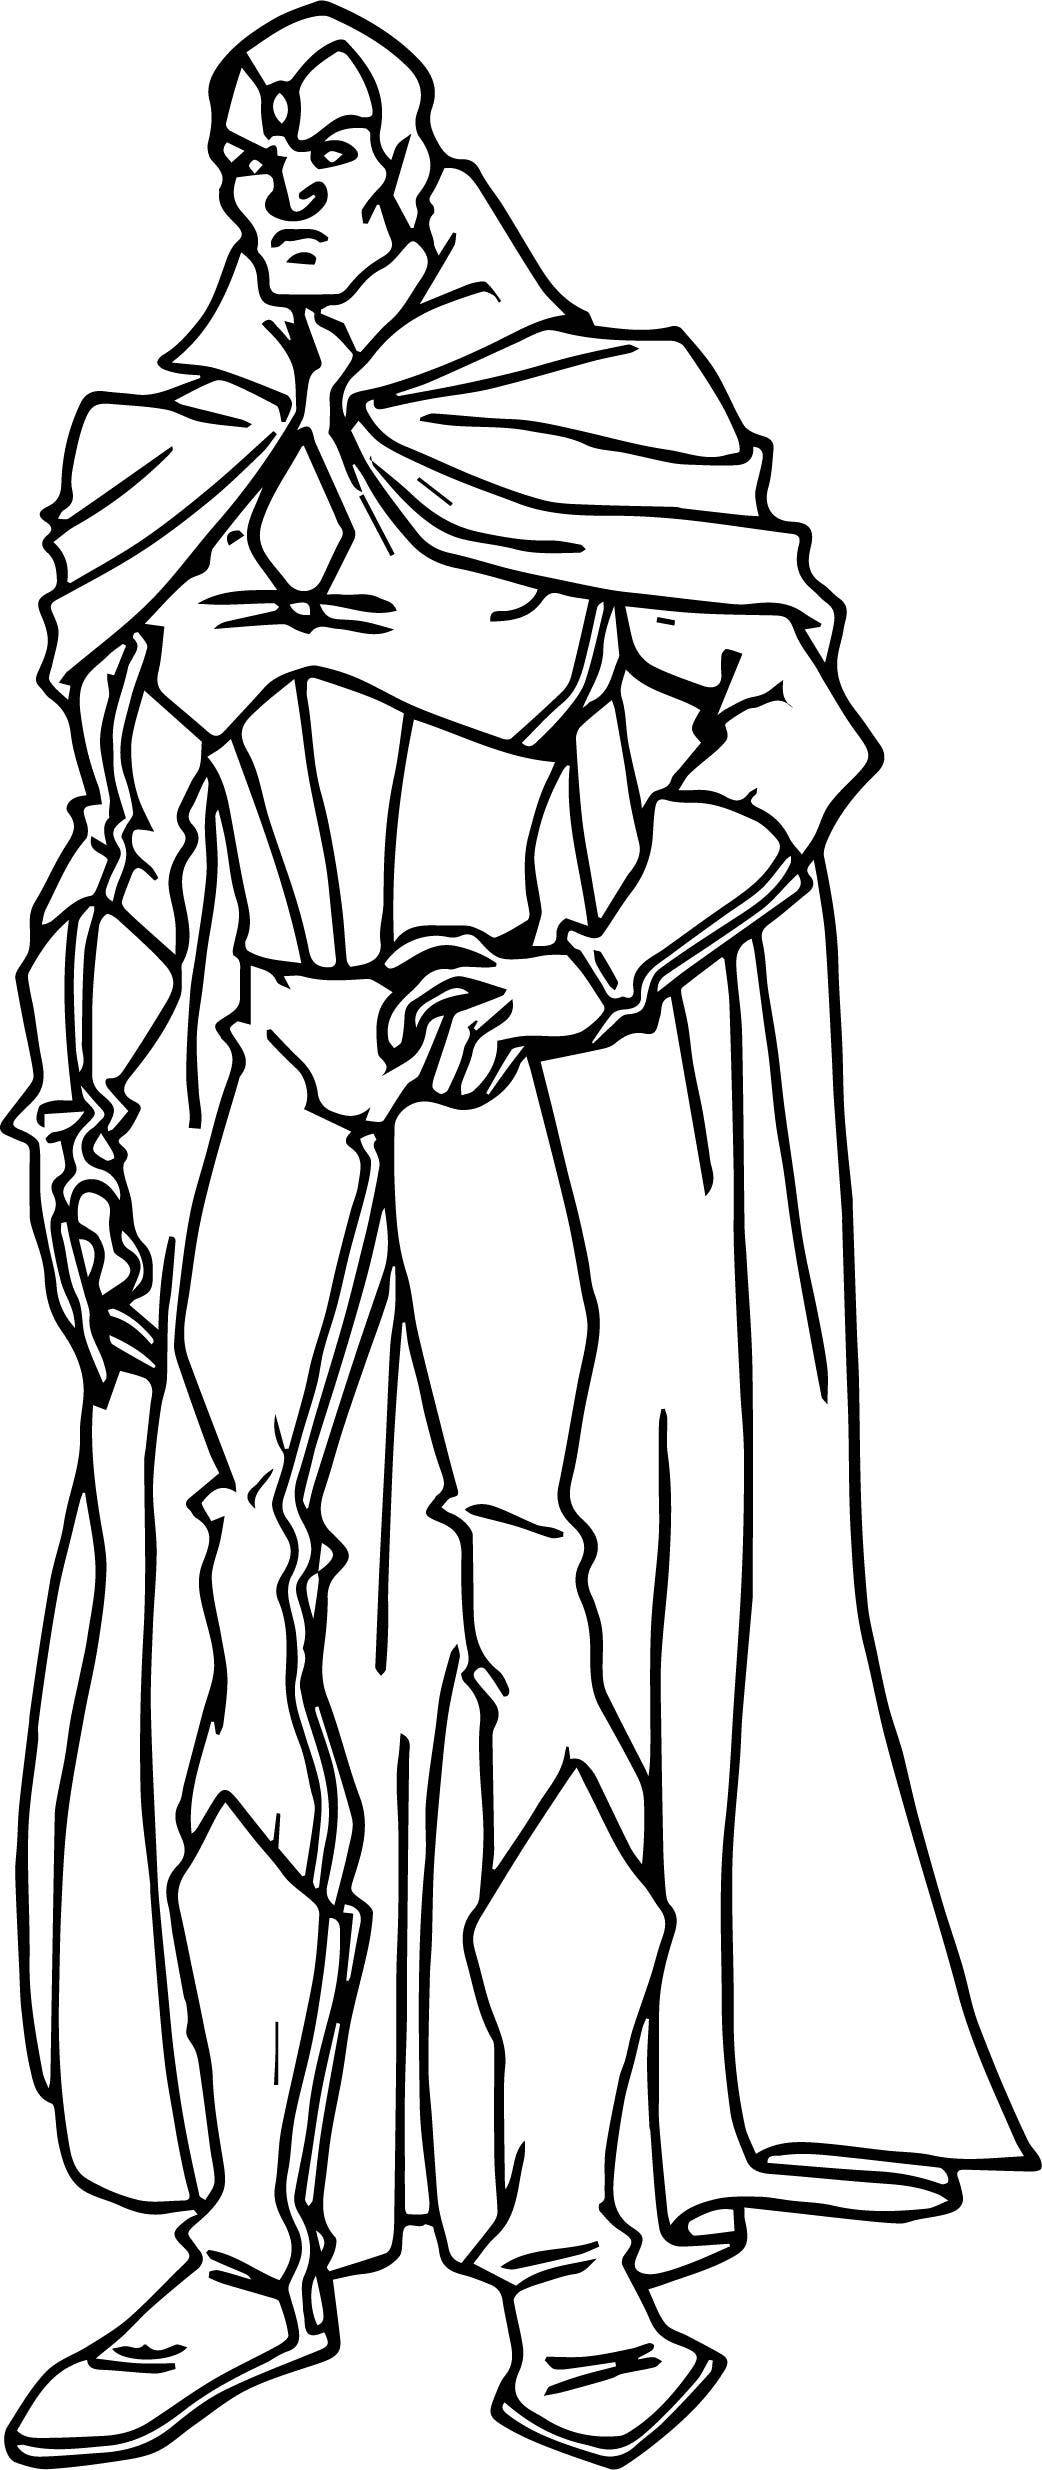 Avengers Coloring Page 03